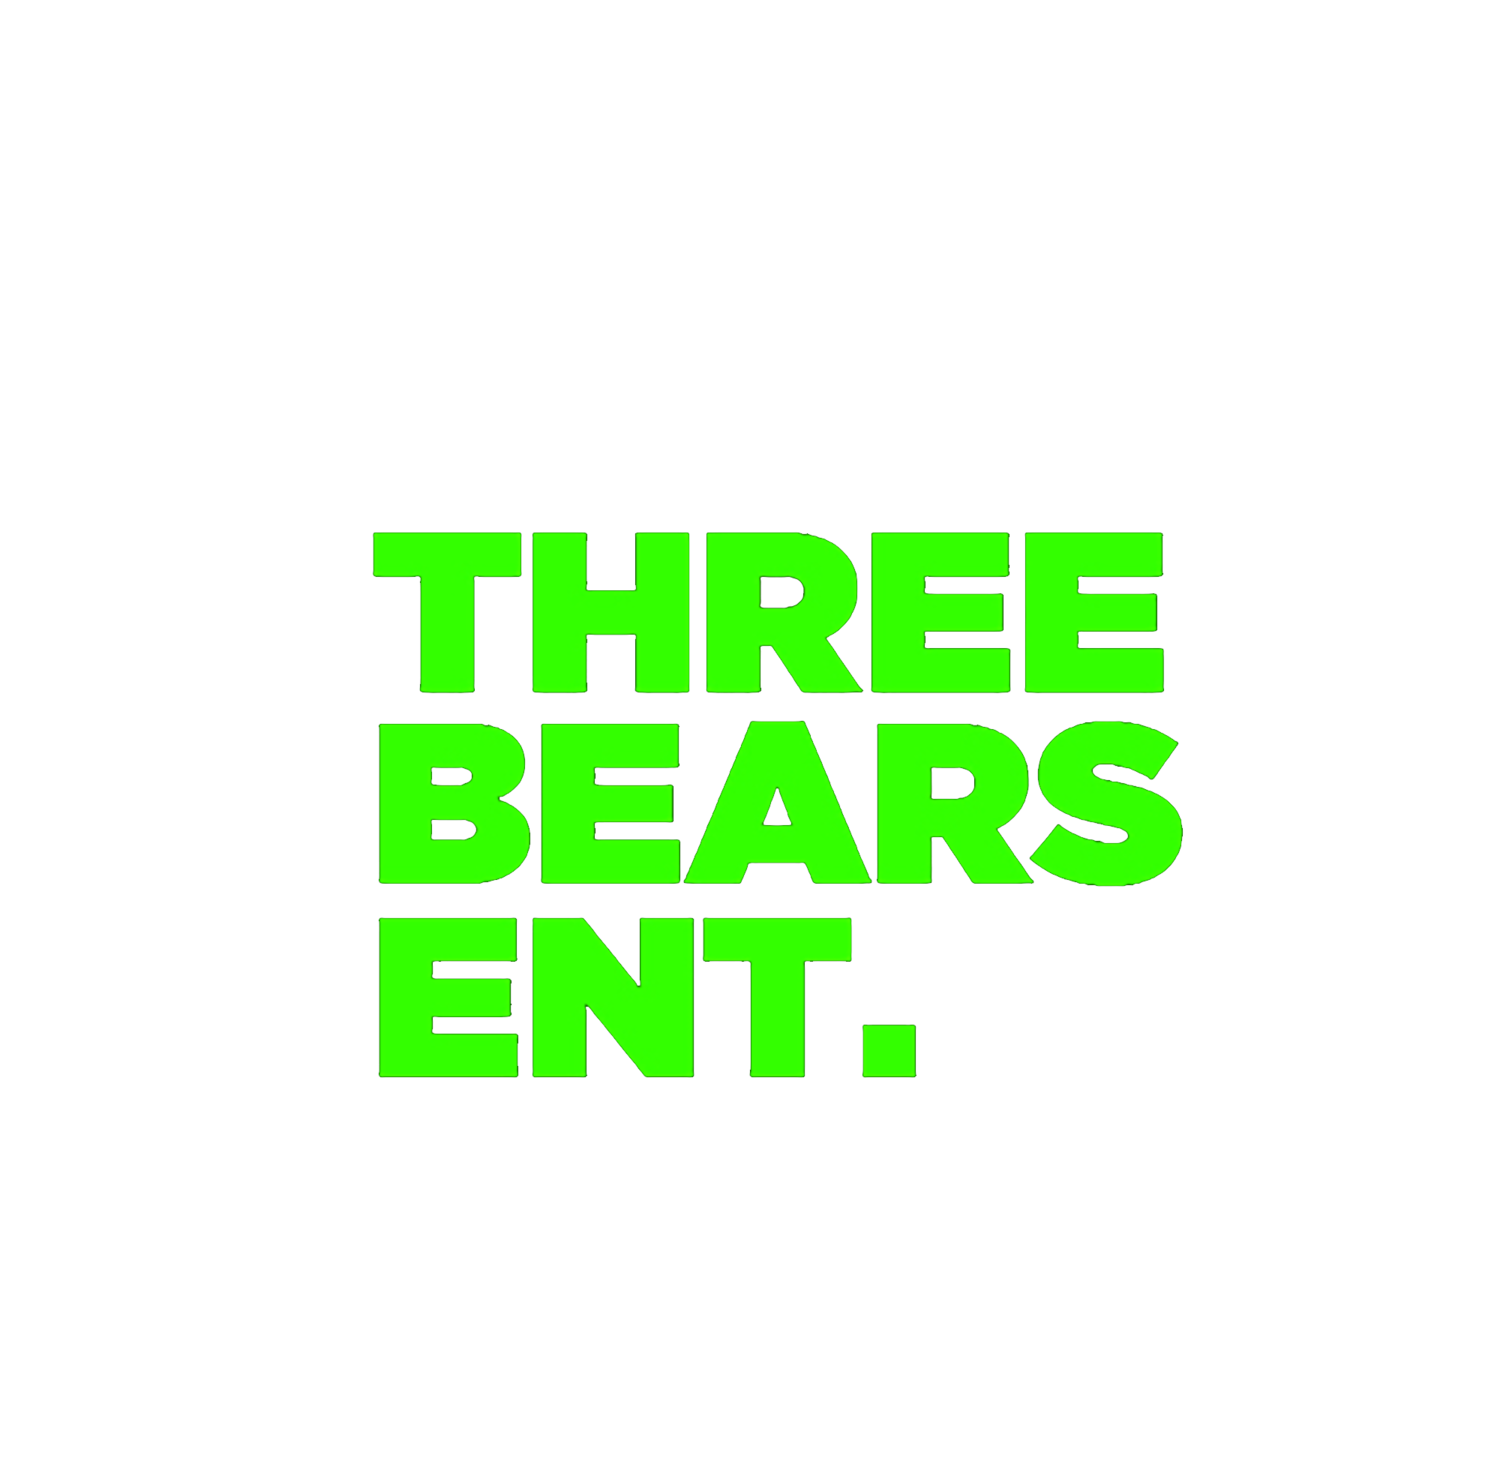 Three Bears Ent.